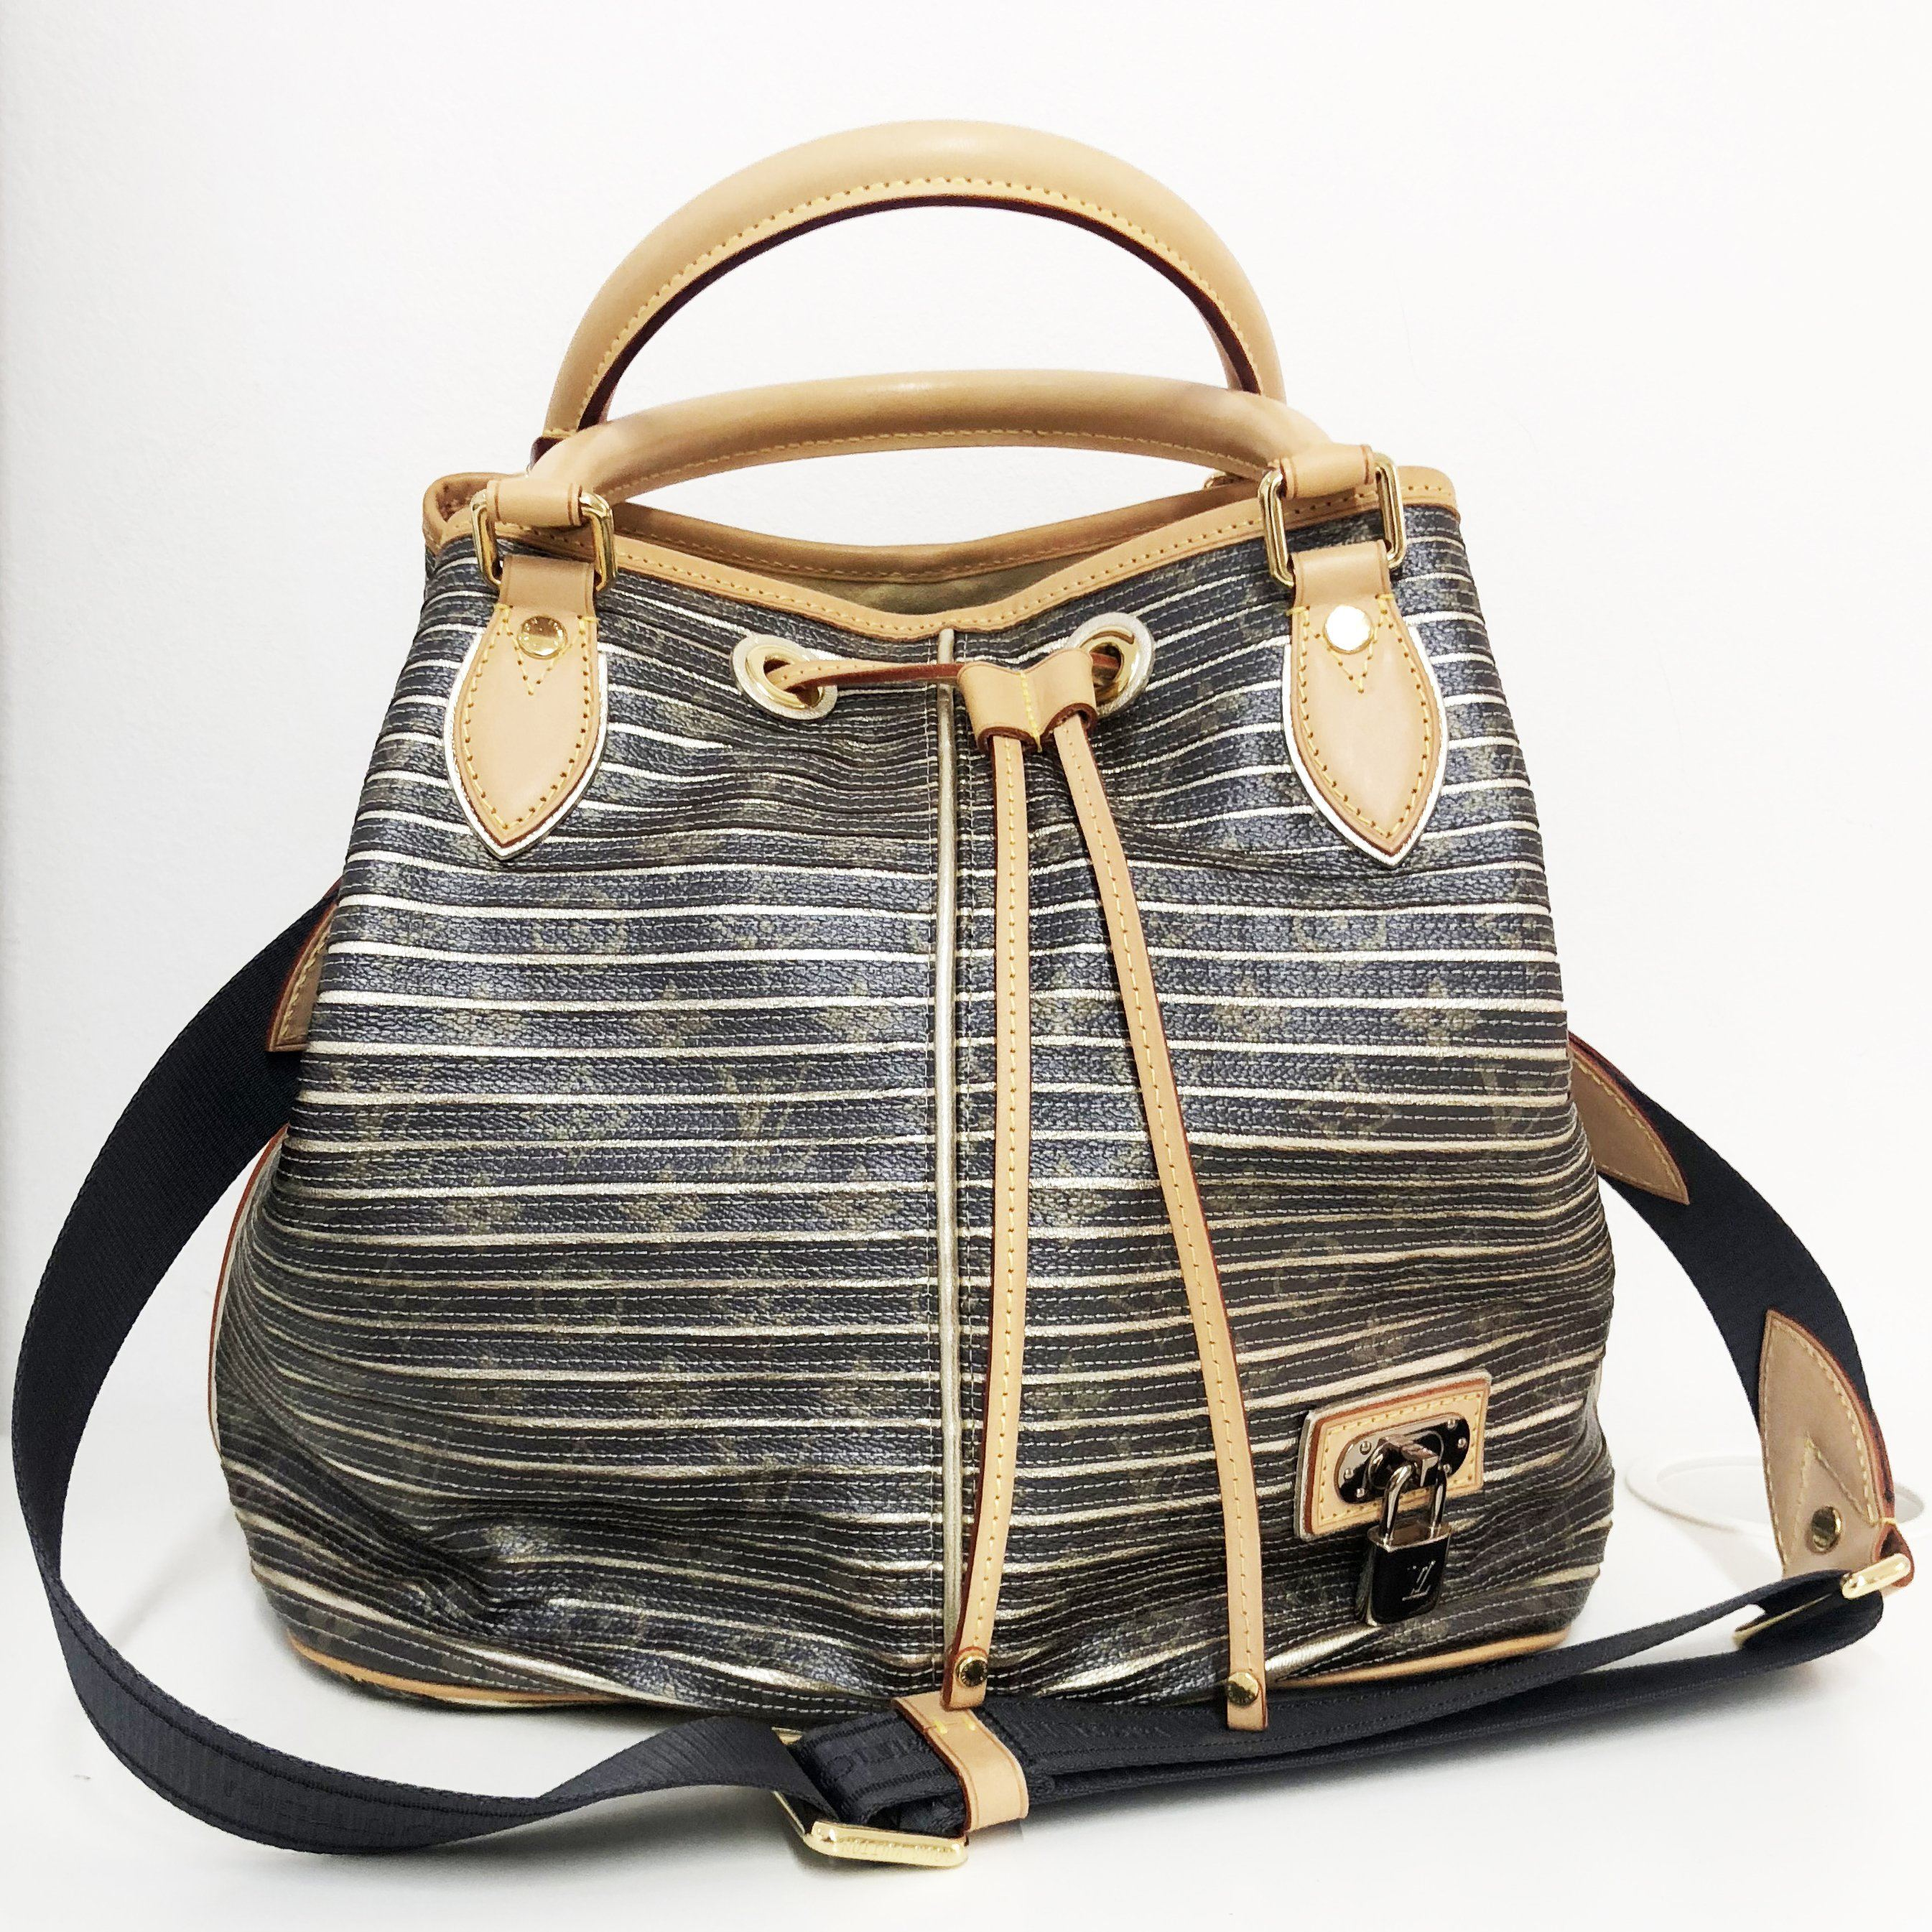 The Louis Vuitton Kaki Monogram Eden Neo Bag (2010 Collection)